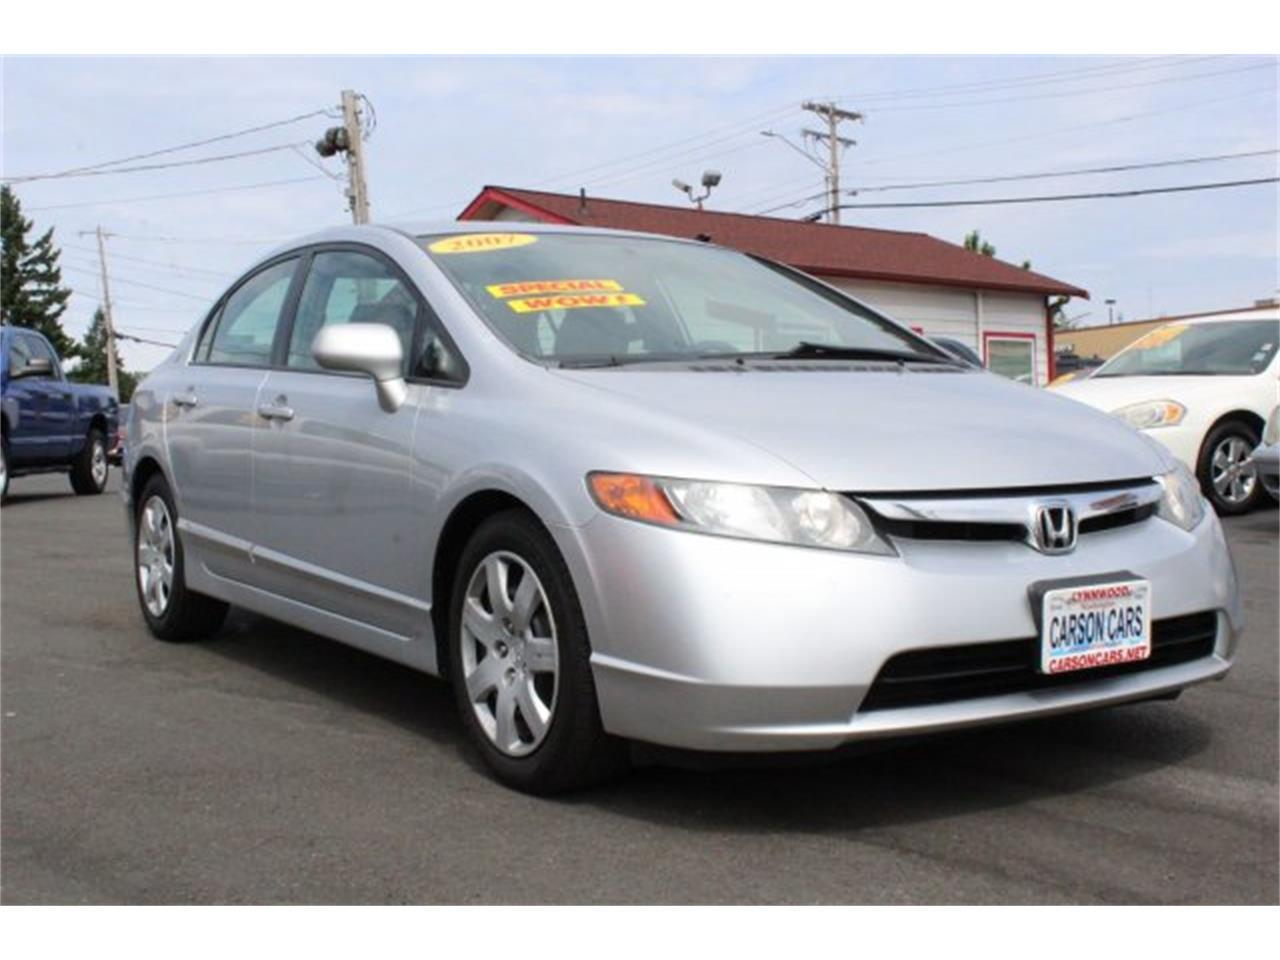 Large Picture of 2007 Civic - $7,995.00 - L2WF